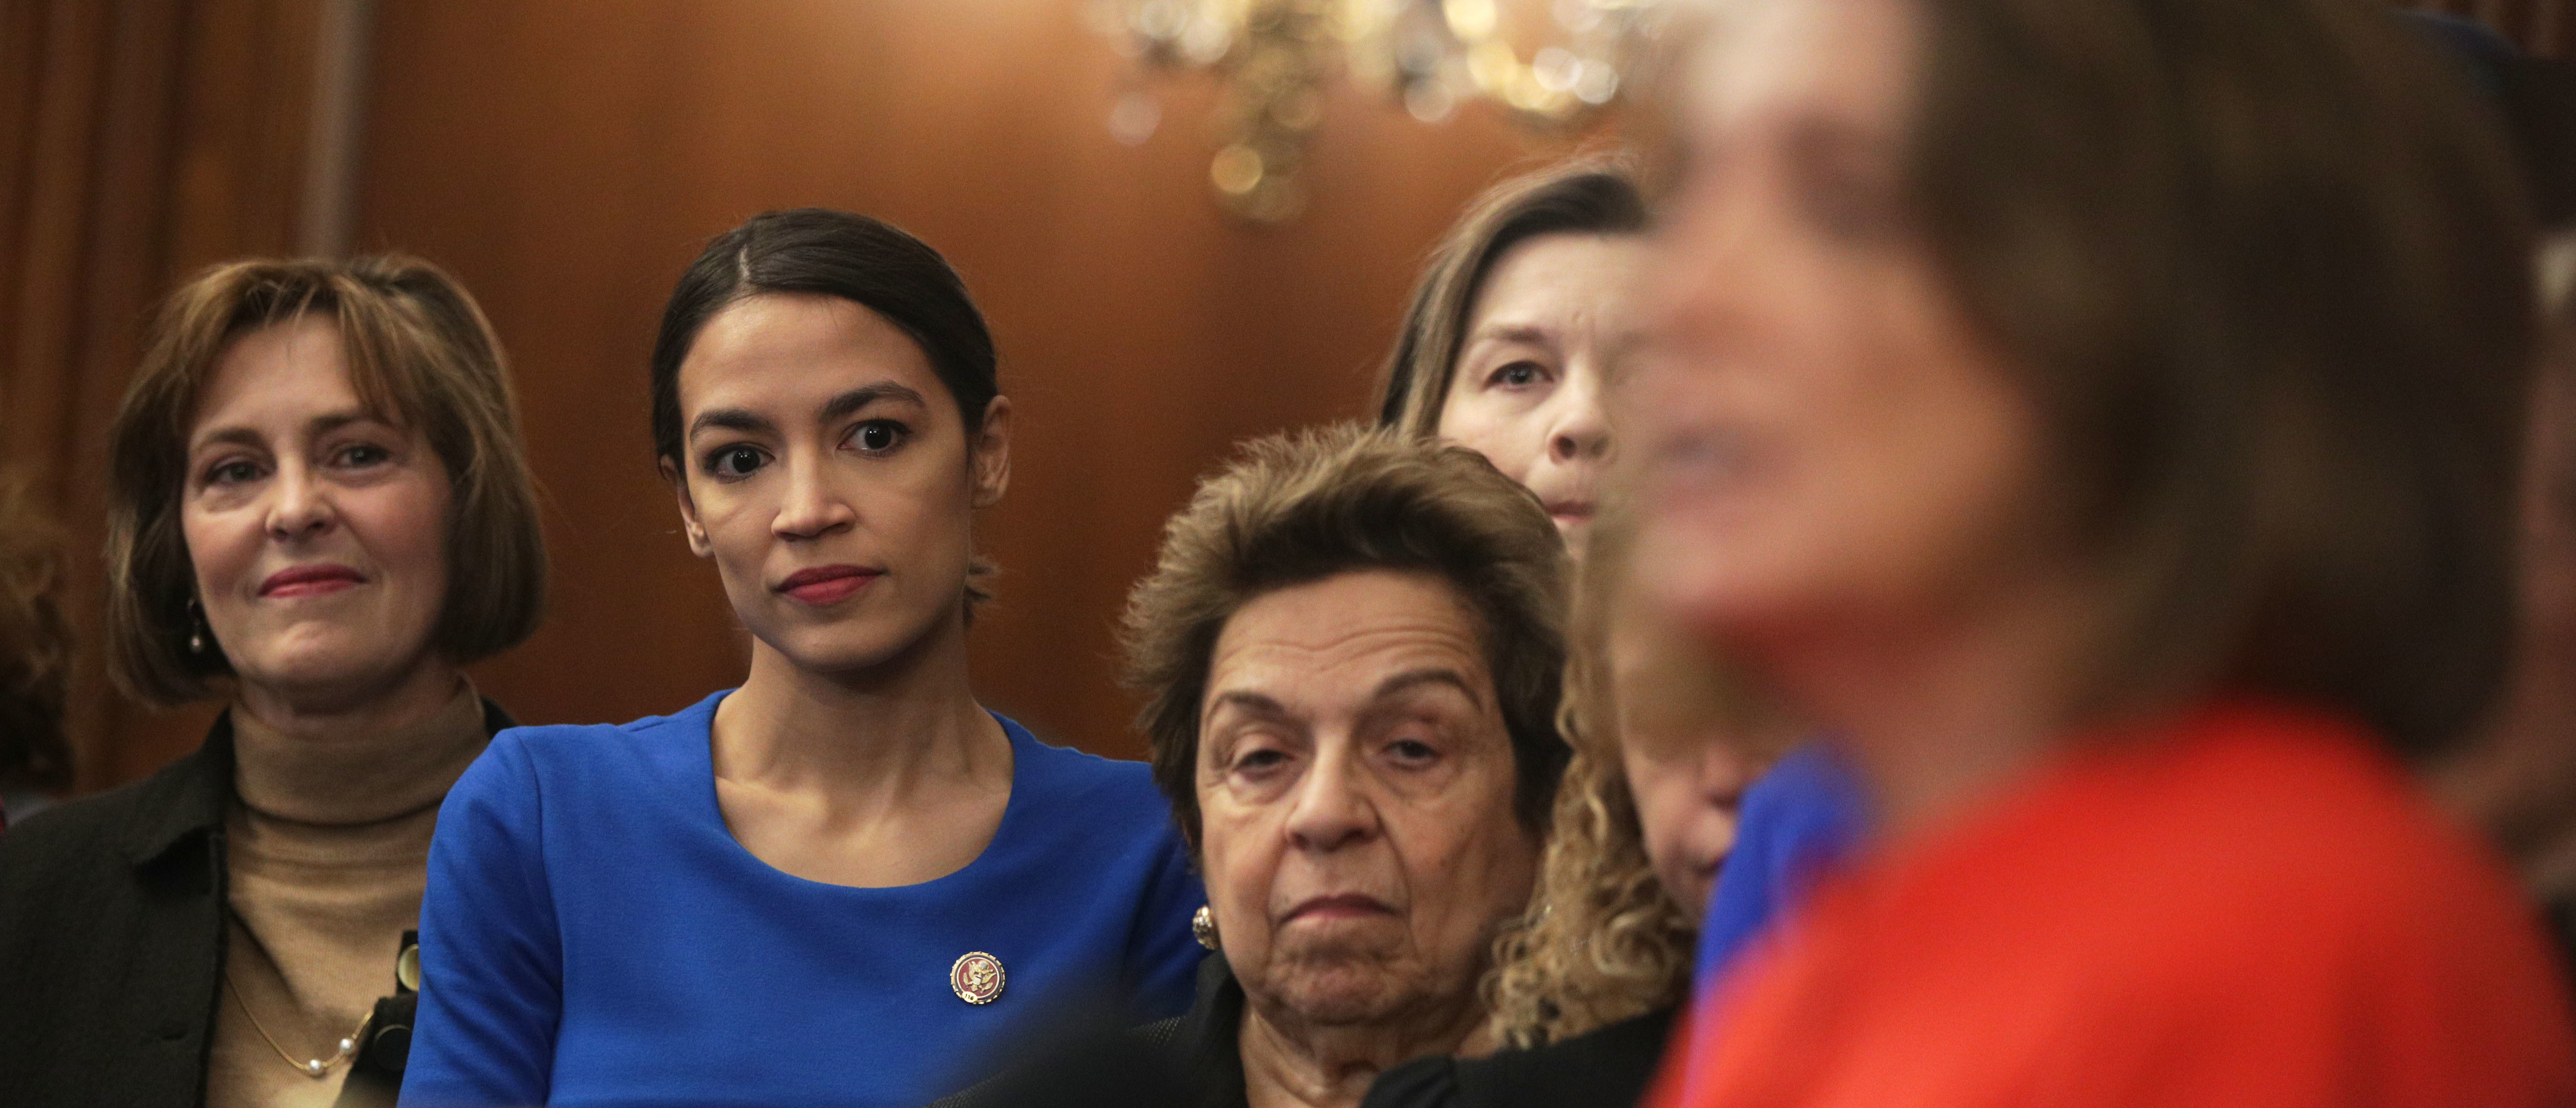 "WASHINGTON, DC - JANUARY 30: (L-R) U.S. Rep. Kathy Castor (D-FL), Rep. Alexandria Ocasio-Cortez (D-NY), and Rep. Donna Shalala (D-FL) listen as Speaker of the House Rep. Nancy Pelosi (D-CA) speaks during a news conference at the U.S. Capitol January 30, 2019 in Washington, DC. House Democrats held a news conference to introduce the ""Paycheck Fairness Act."" (Photo by Alex Wong/Getty Images)"